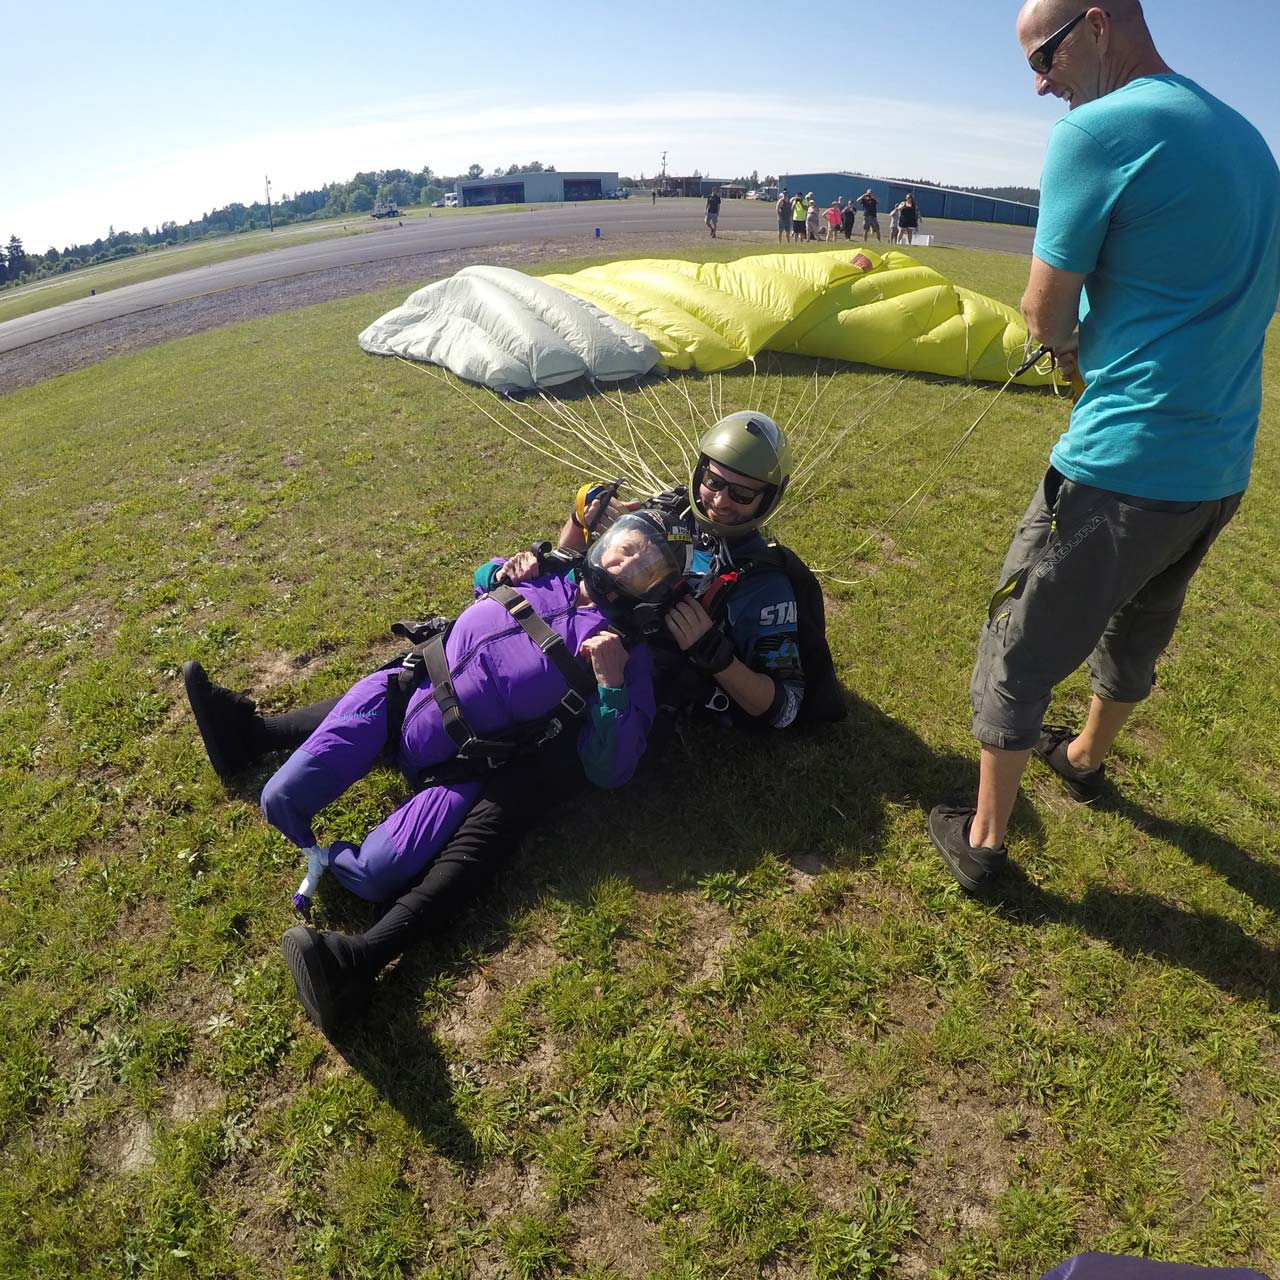 Disabled female tandem skydiving student landing in grass with instructor at PNW Skydiving in Oregon